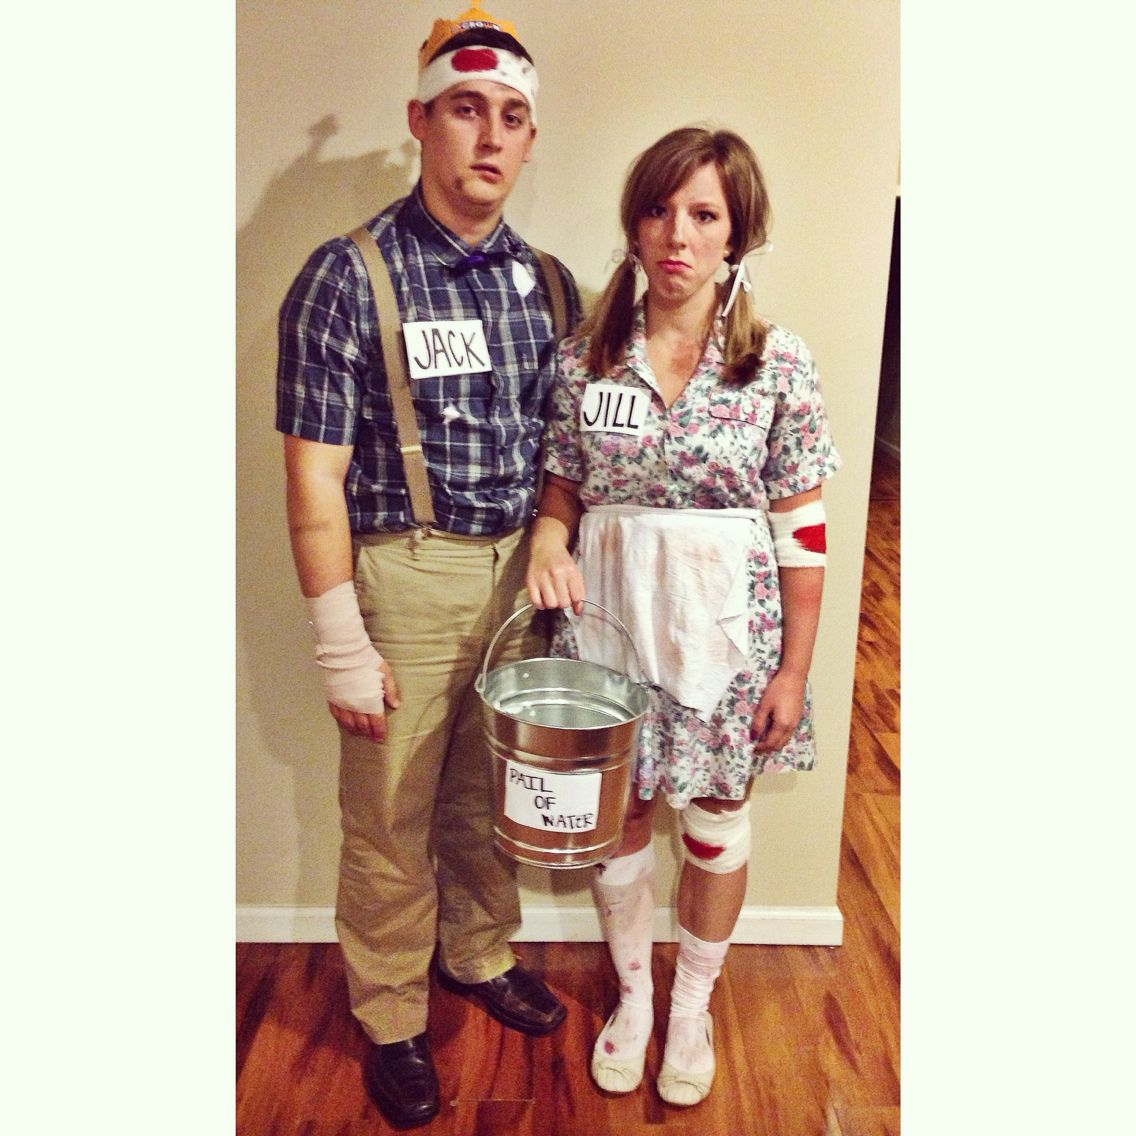 jack and jill costume cool pinterest costumes halloween costumes and halloween 2017. Black Bedroom Furniture Sets. Home Design Ideas